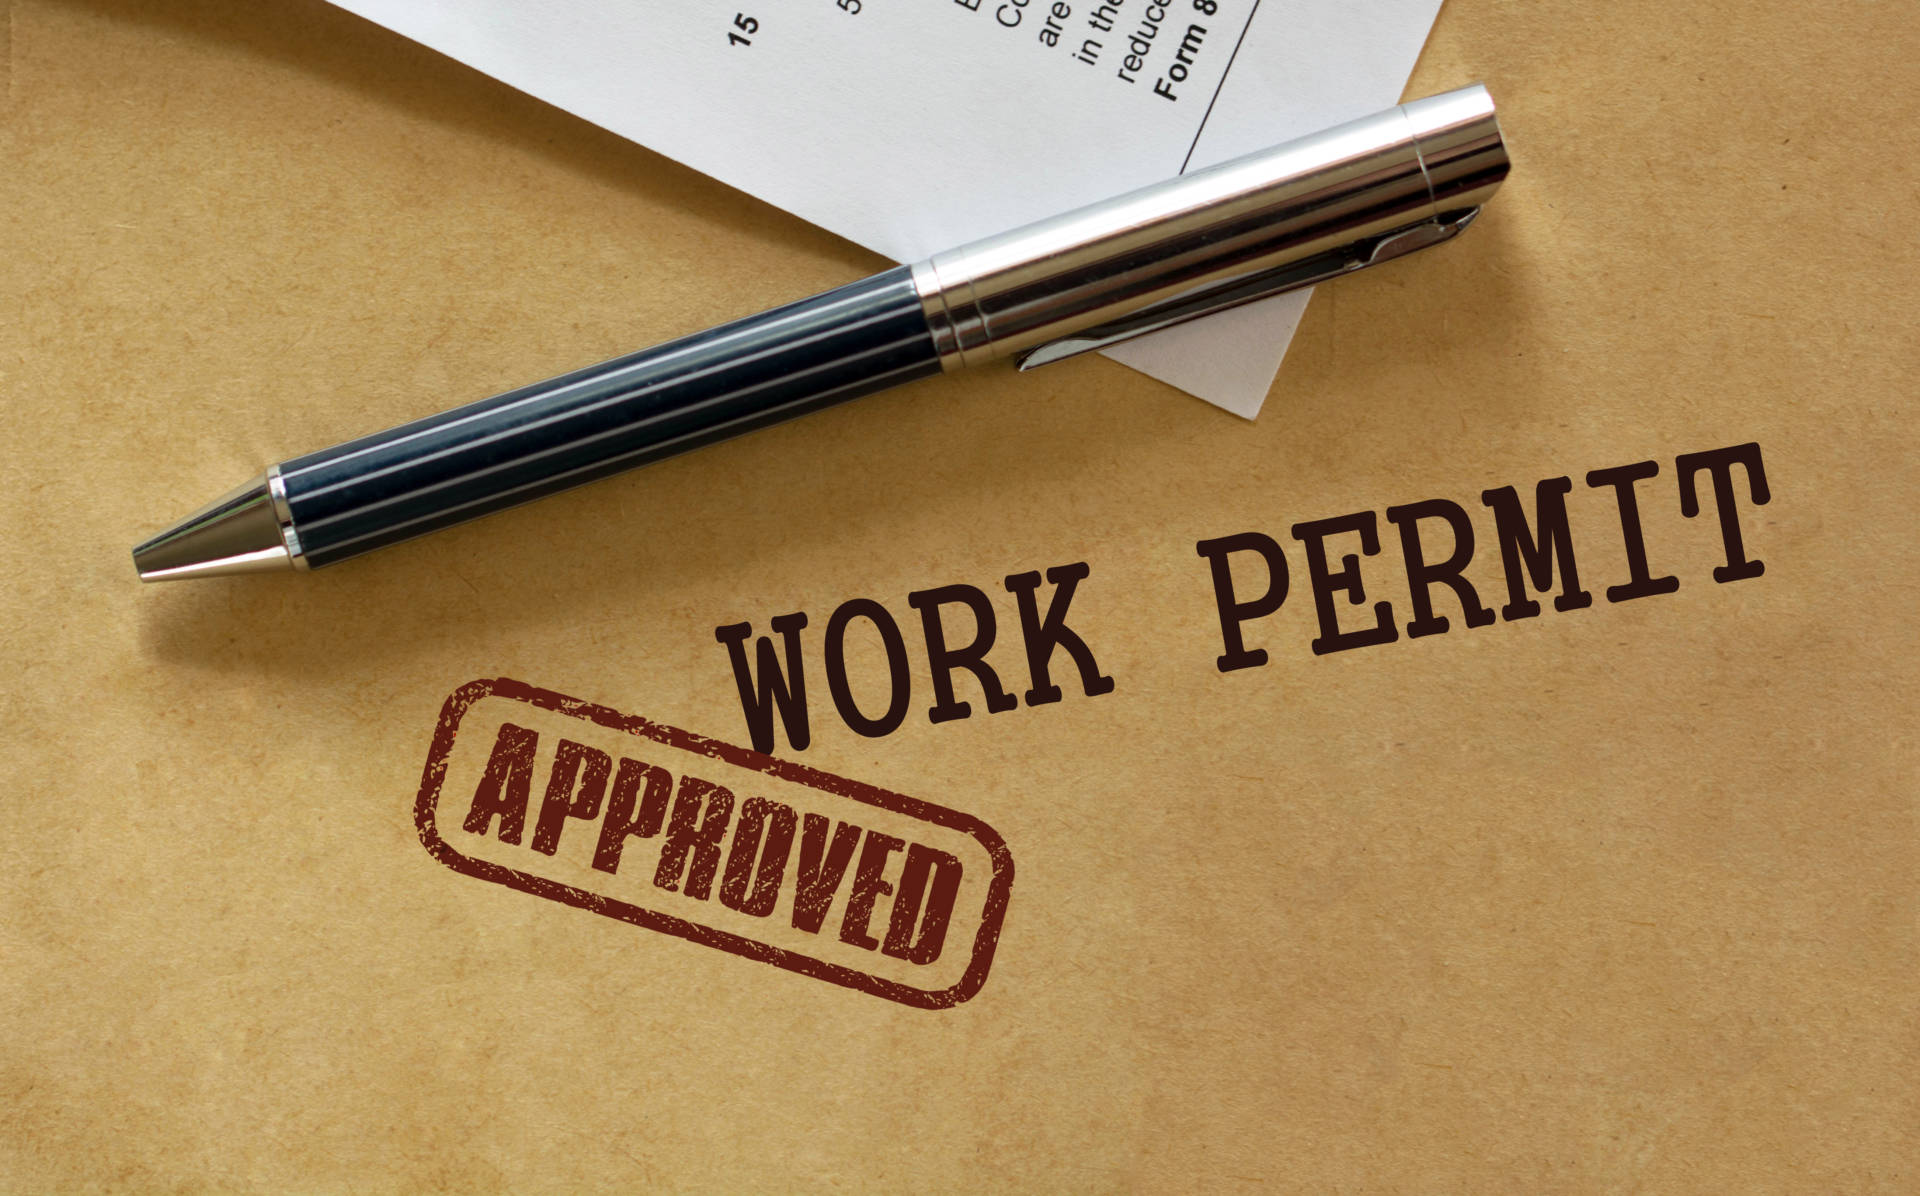 Approved work permit.